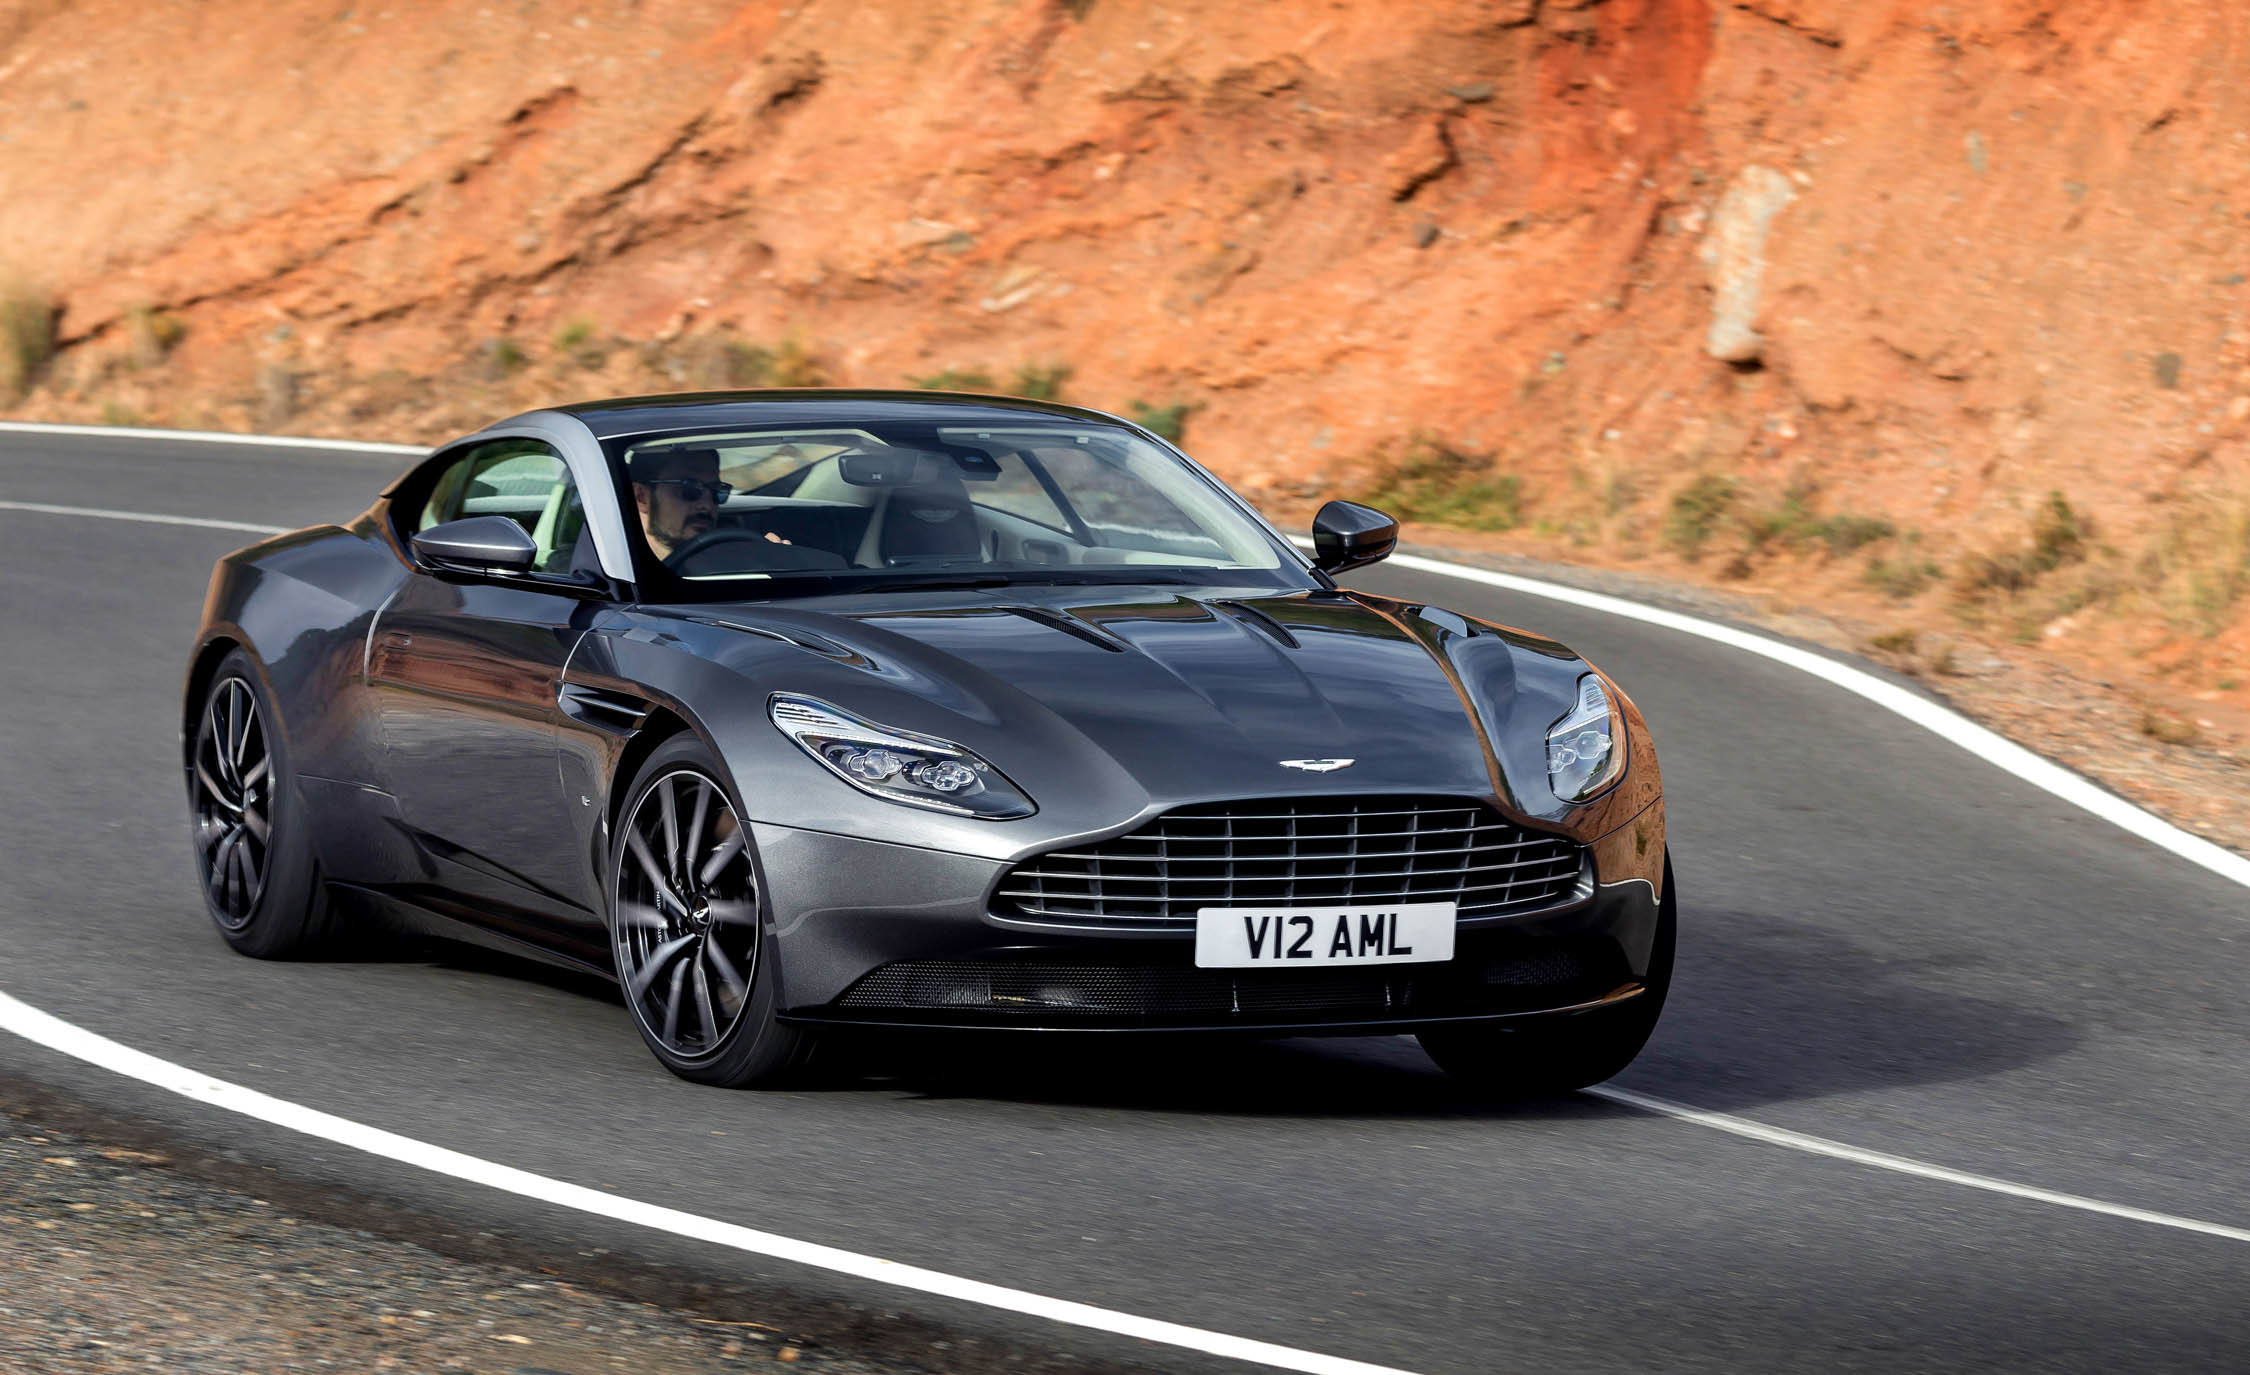 2017 Aston Martin Db11 Preview (Photo 13 of 22)